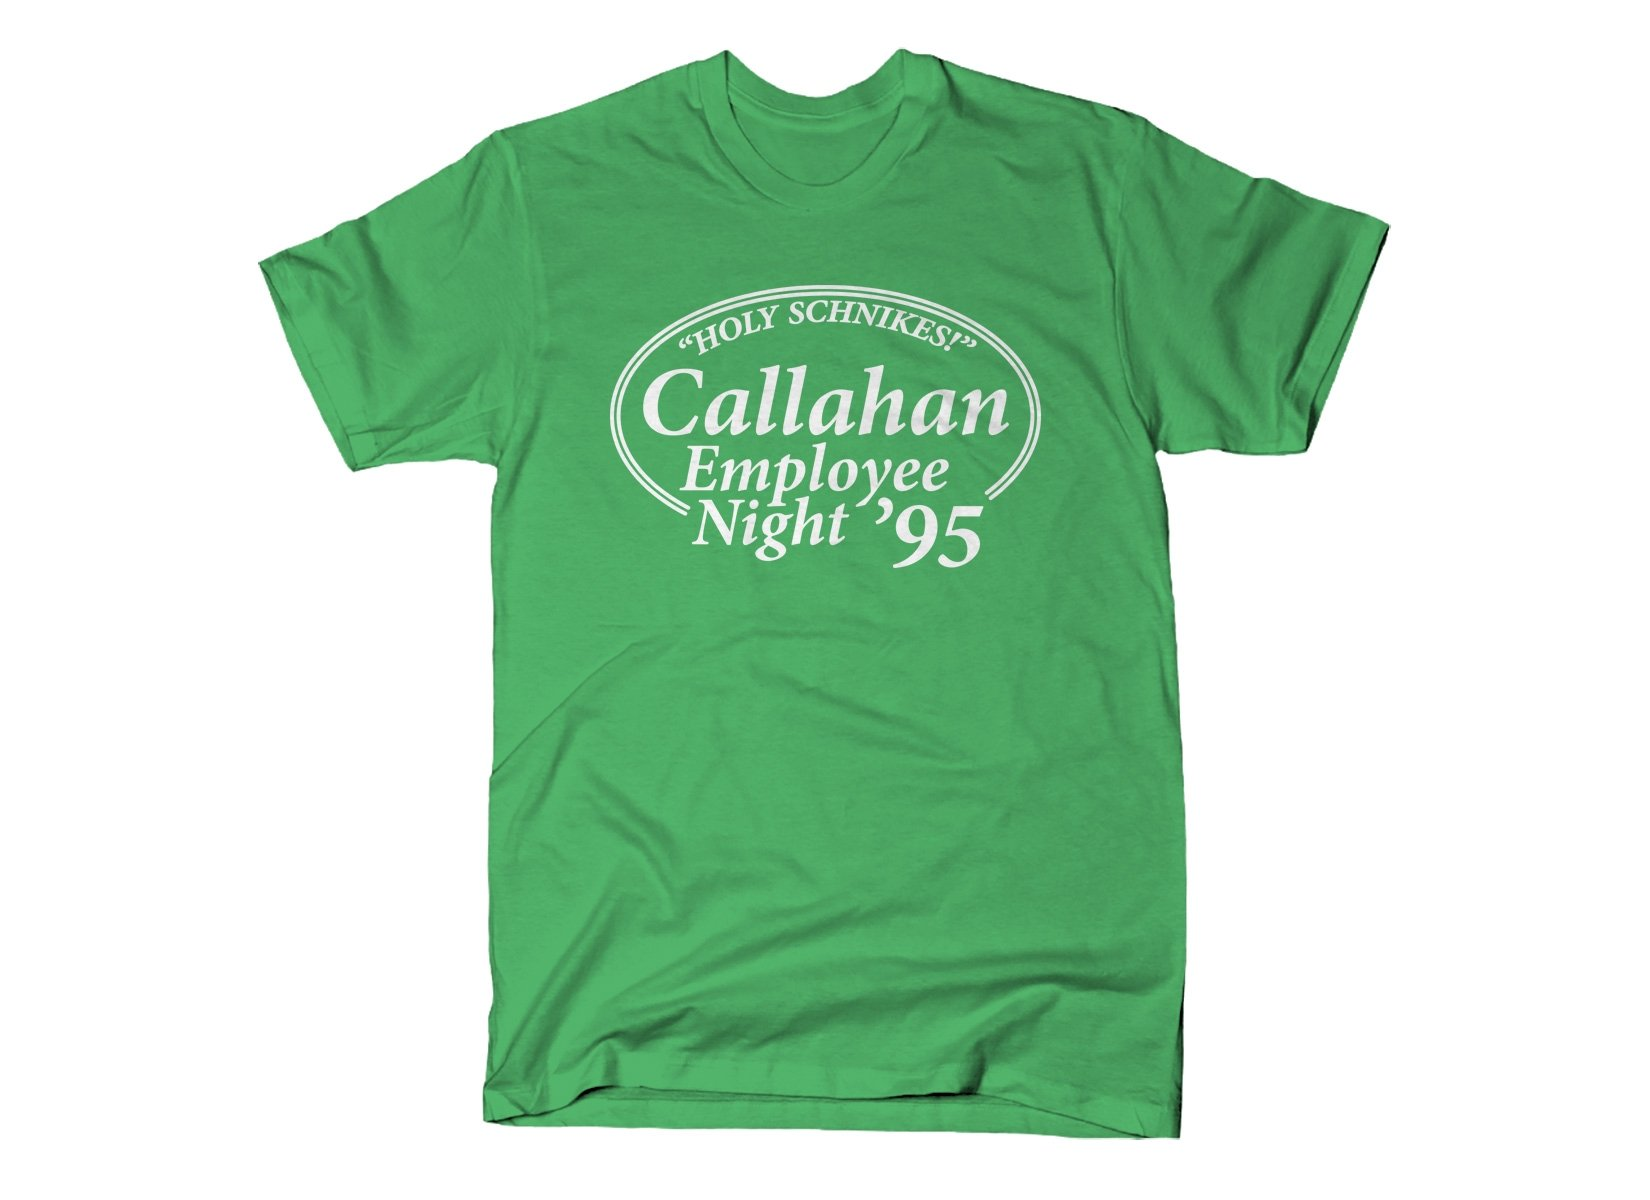 Callahan Employee Night on Mens T-Shirt